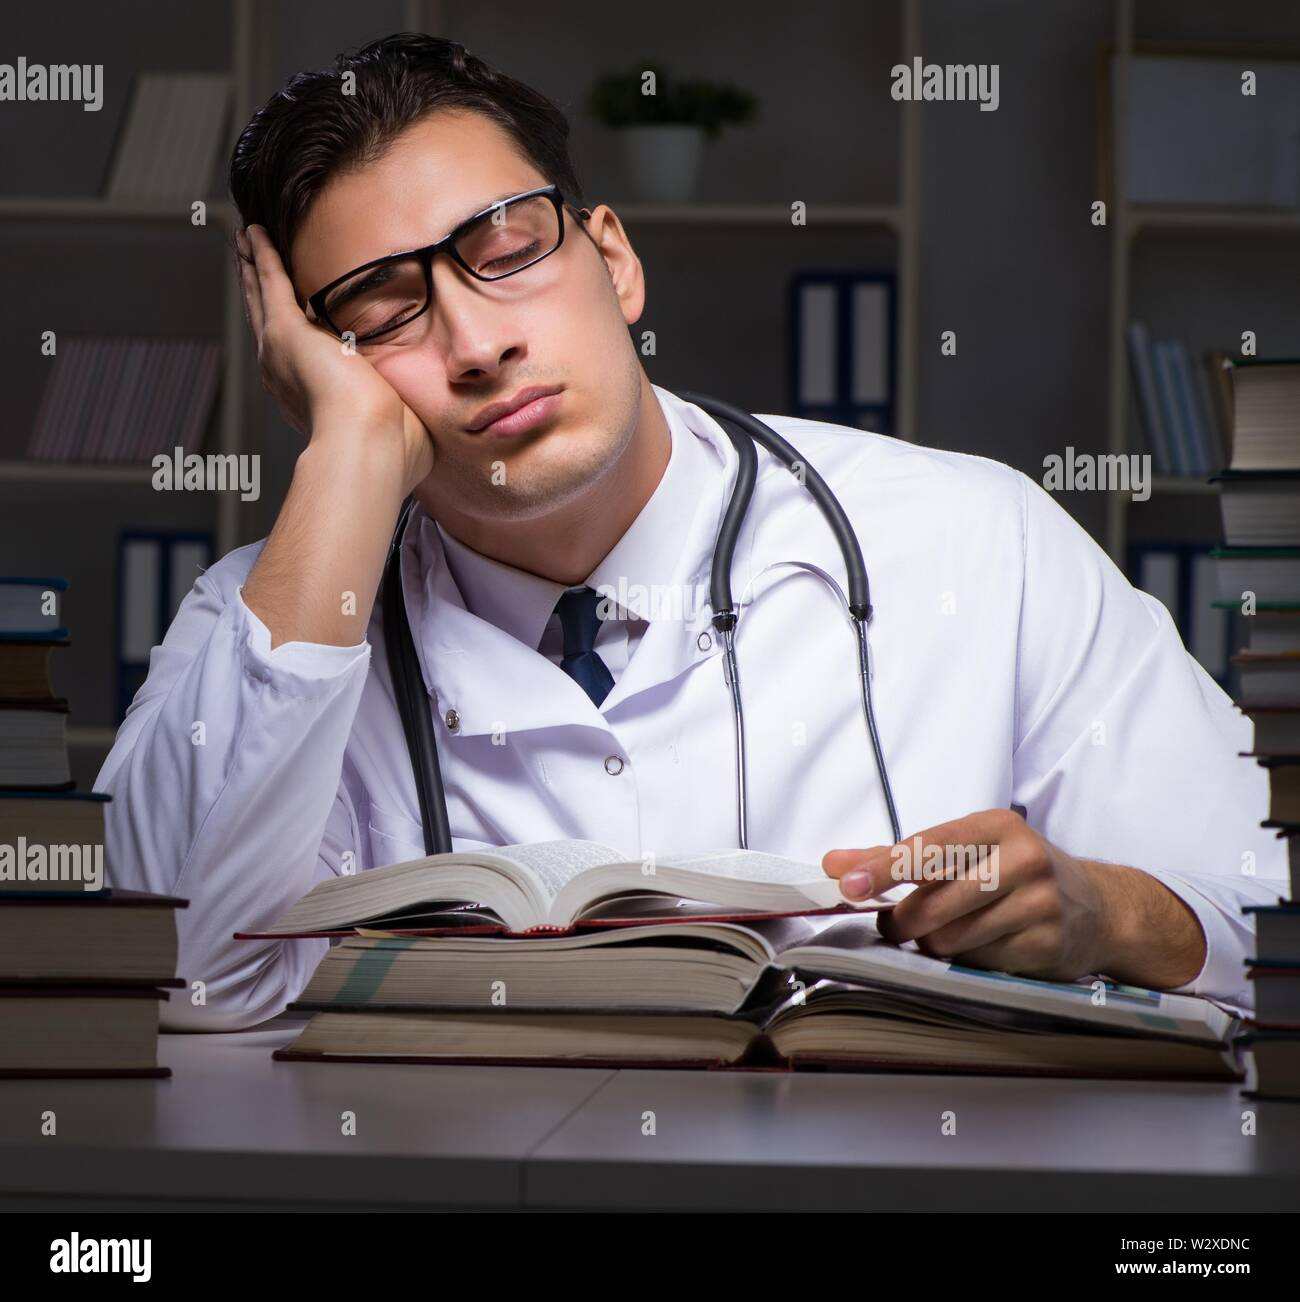 The medical student preparing for university exams at night - Stock Image